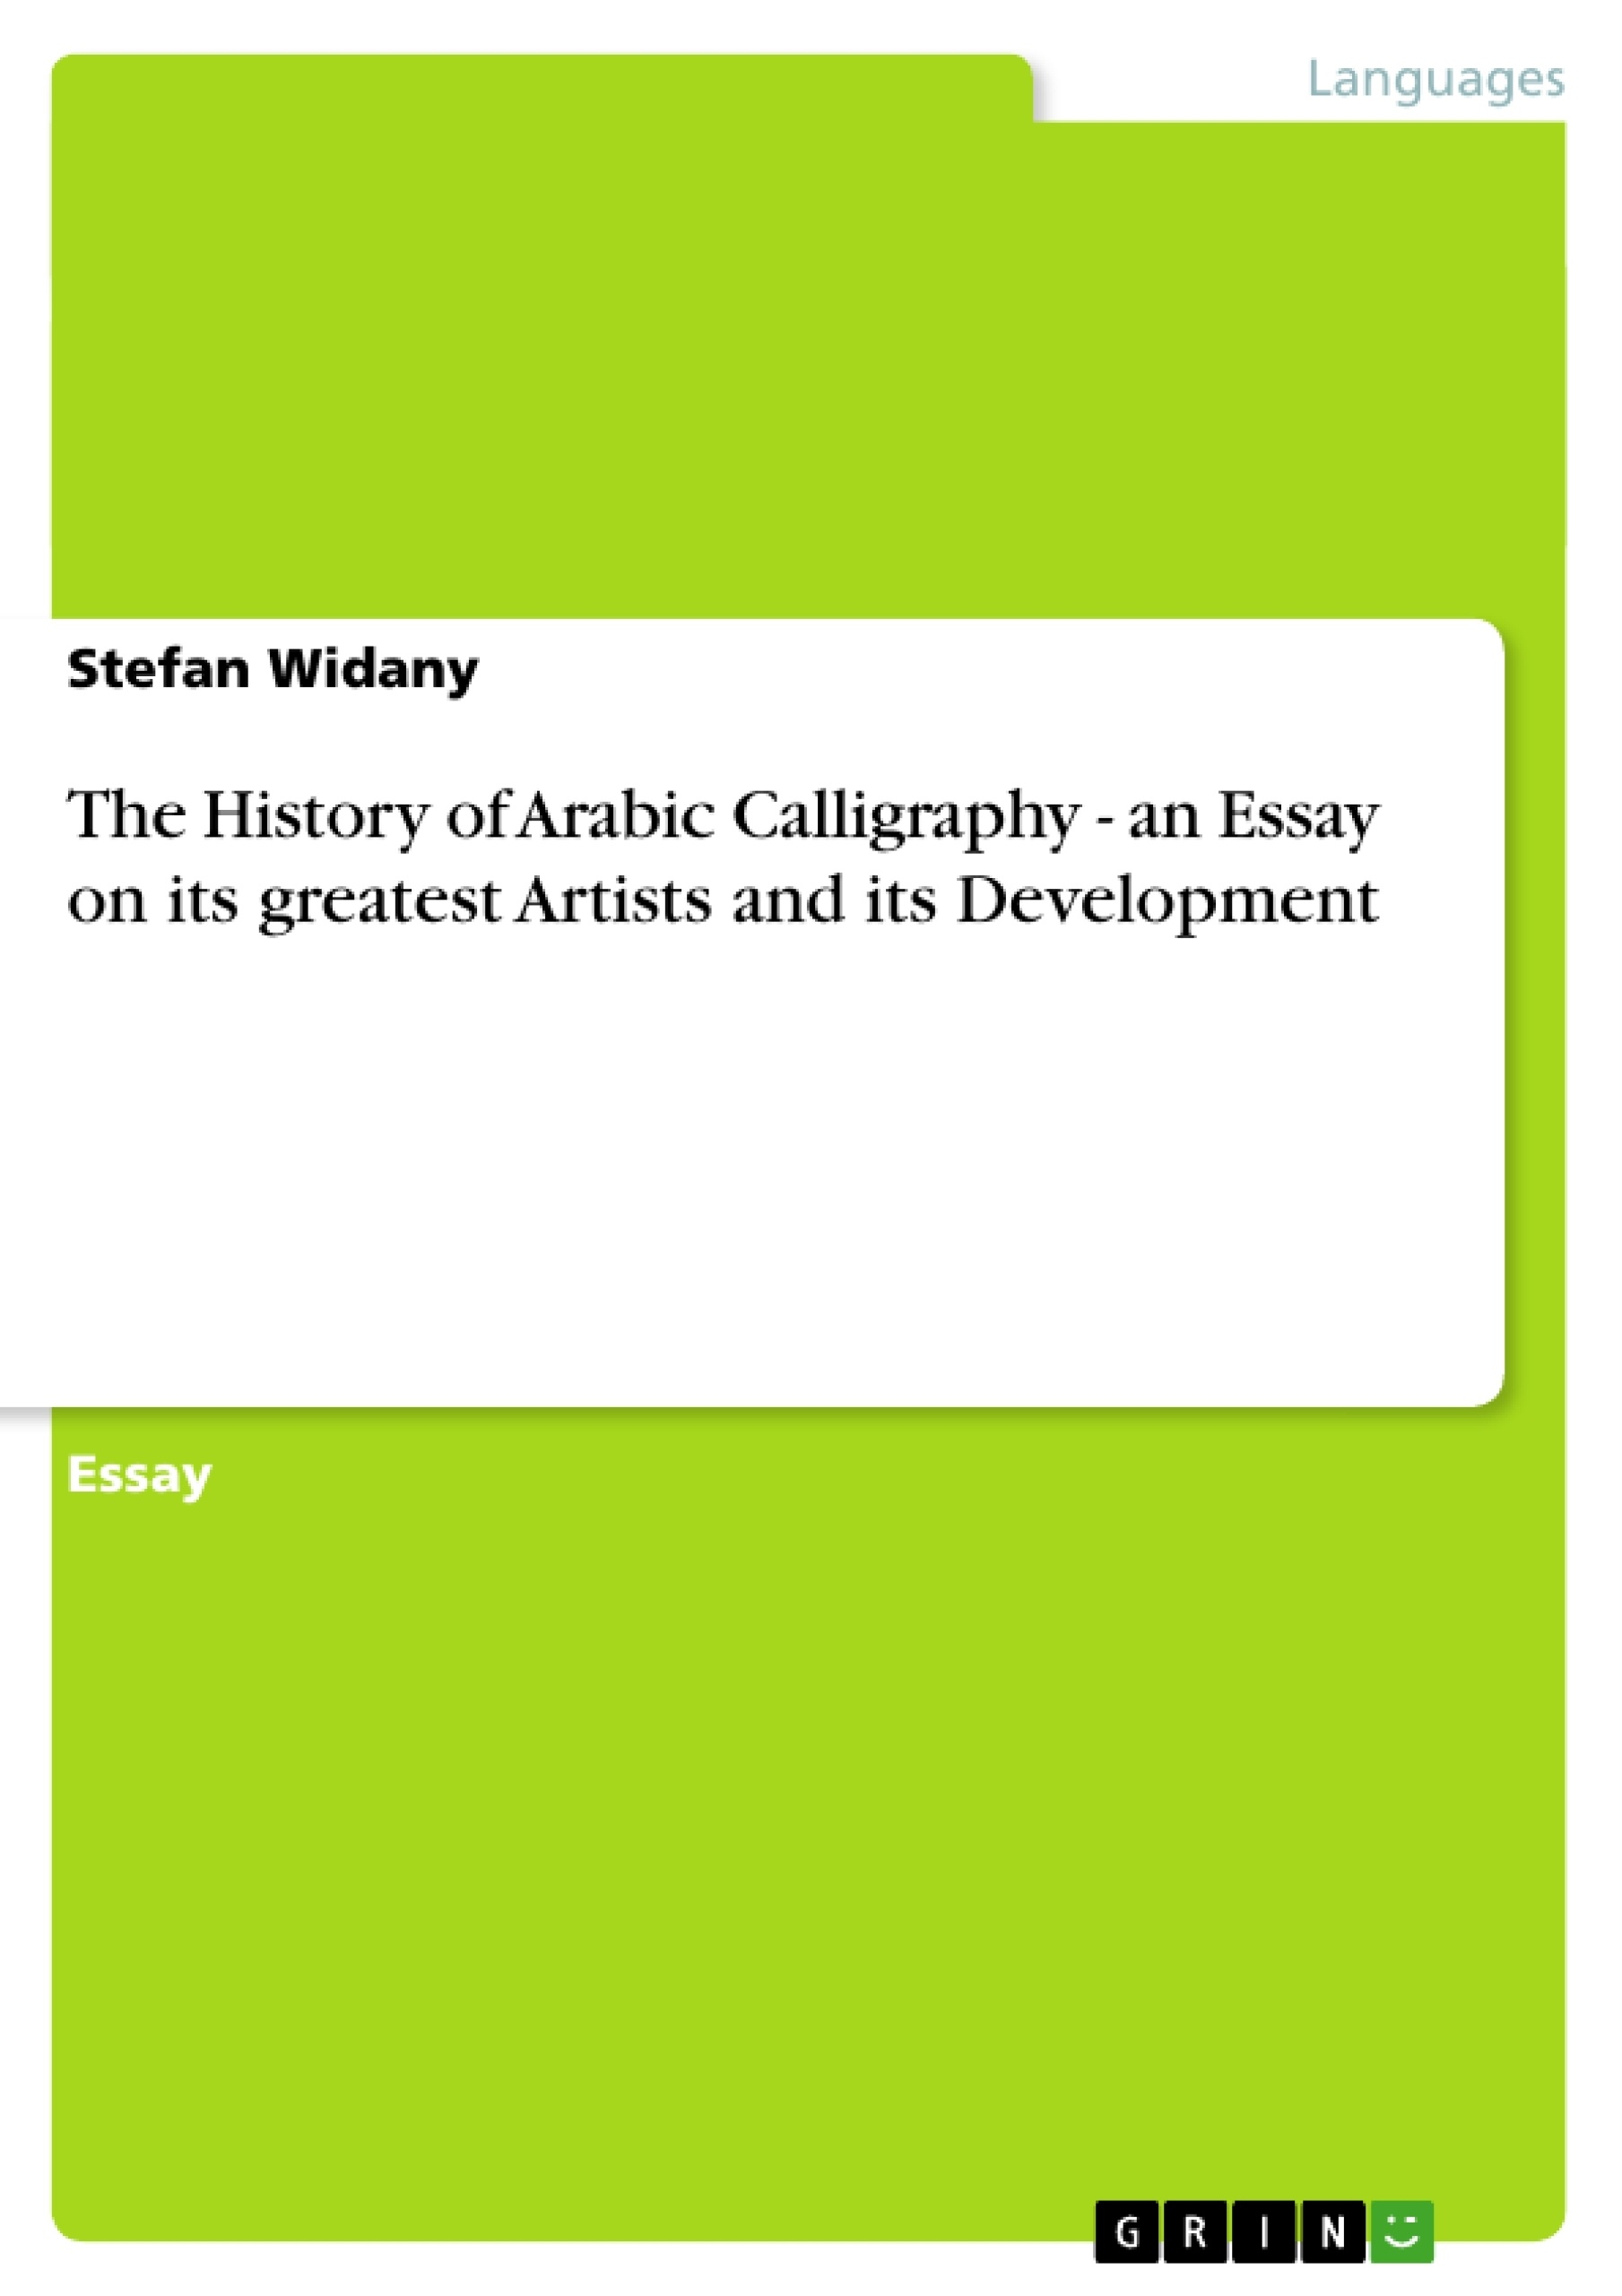 the history of arabic calligraphy an essay on its greatest the history of arabic calligraphy an essay on its greatest publish your master s thesis bachelor s thesis essay or term paper